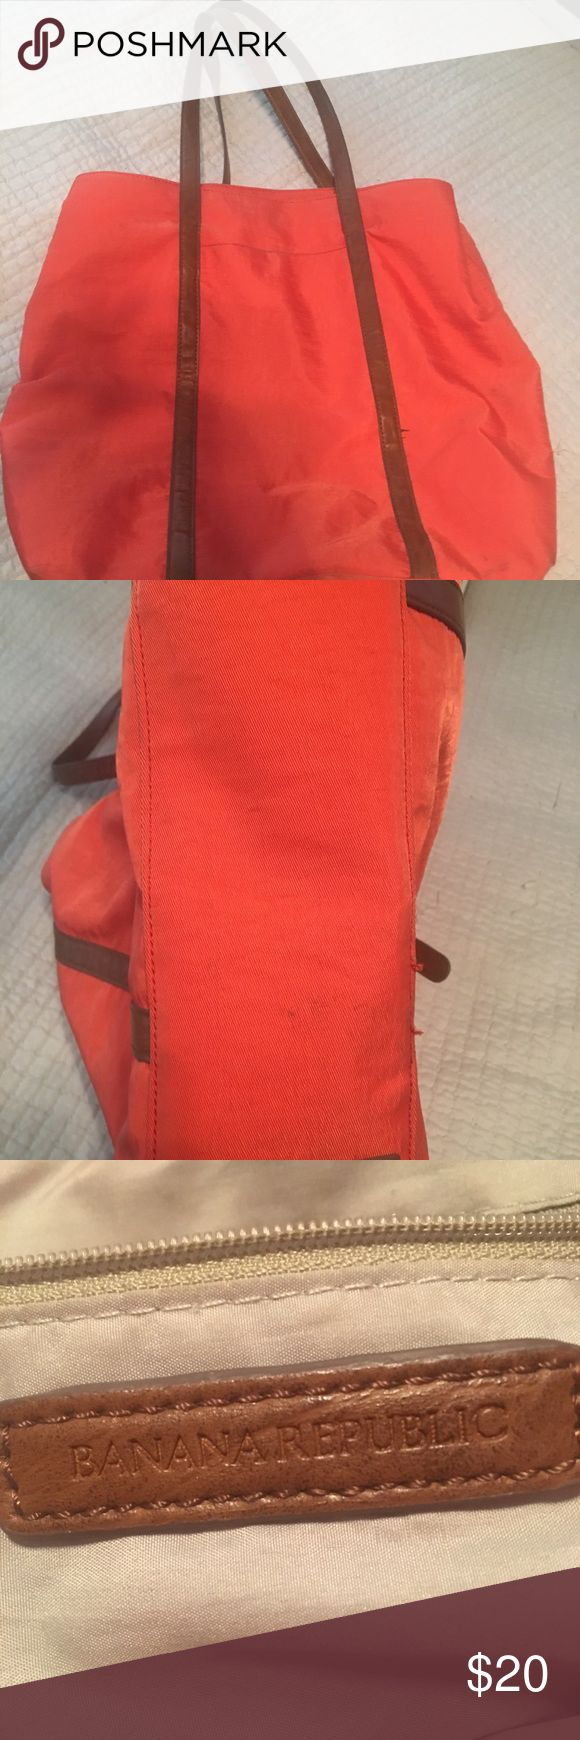 """Banana Republic tote - Red Adorable Red tote bag by Banana Republic.  """"Blake"""" style bag, red nylon with brown leather handles and trim.  Bag details: 3 compartments, button snap and center zipper.  H - 15"""" W - 16"""" D - 6"""" Excellent used condition Banana Republic Bags Totes"""